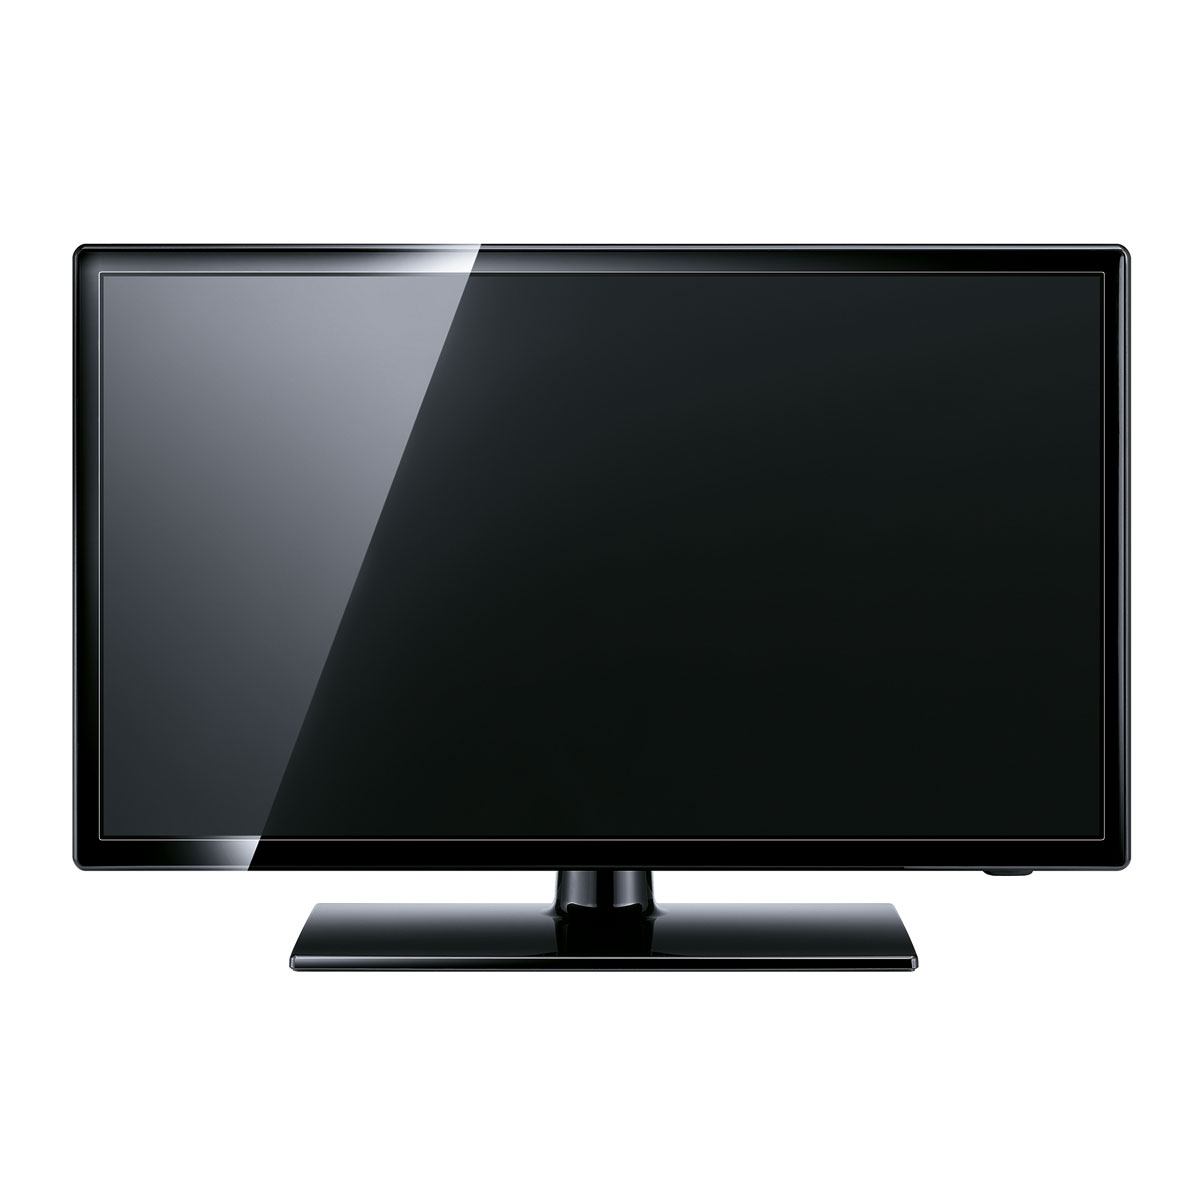 samsung ue32eh4000 tv samsung sur ldlc. Black Bedroom Furniture Sets. Home Design Ideas